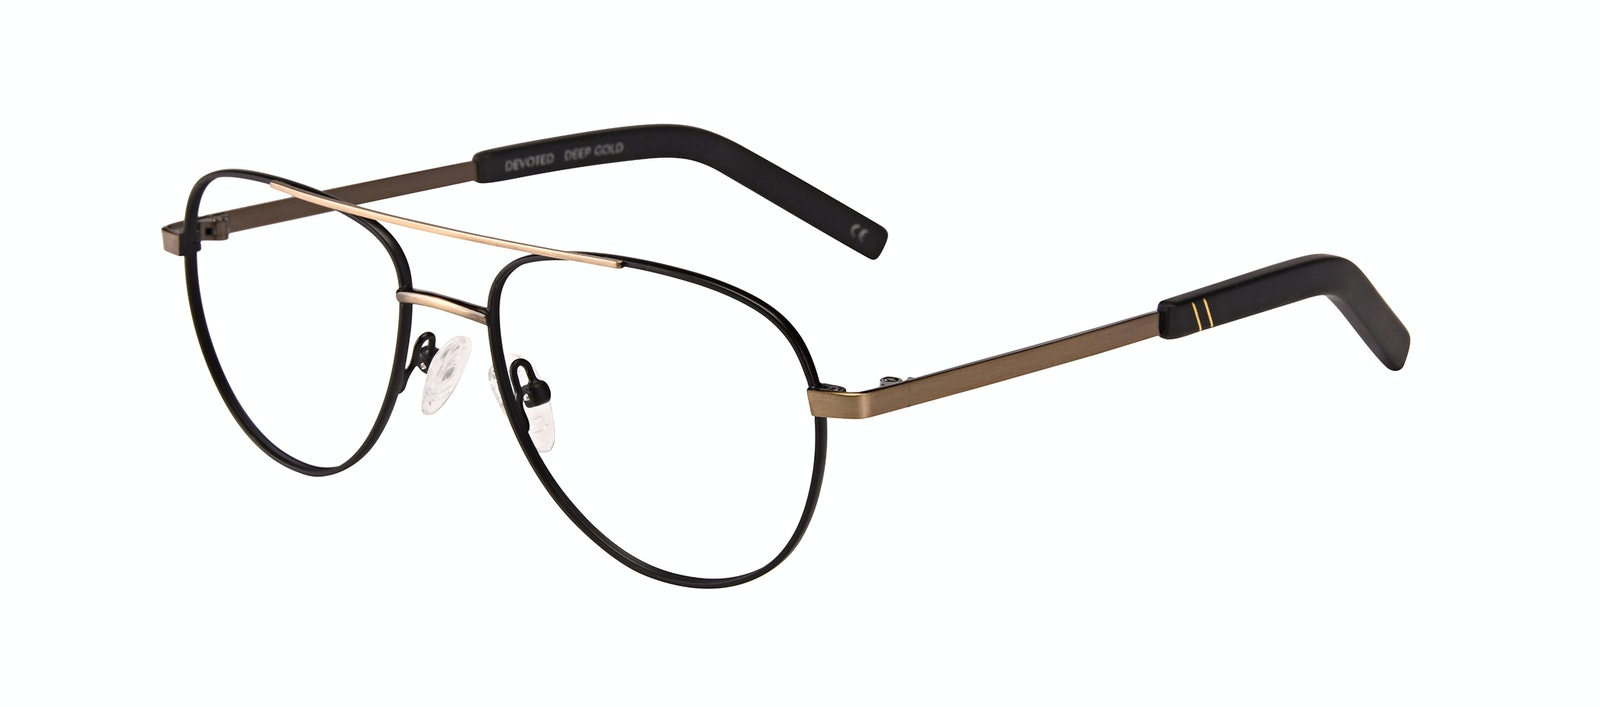 Affordable Fashion Glasses Aviator Eyeglasses Men Devoted Deep Gold Tilt